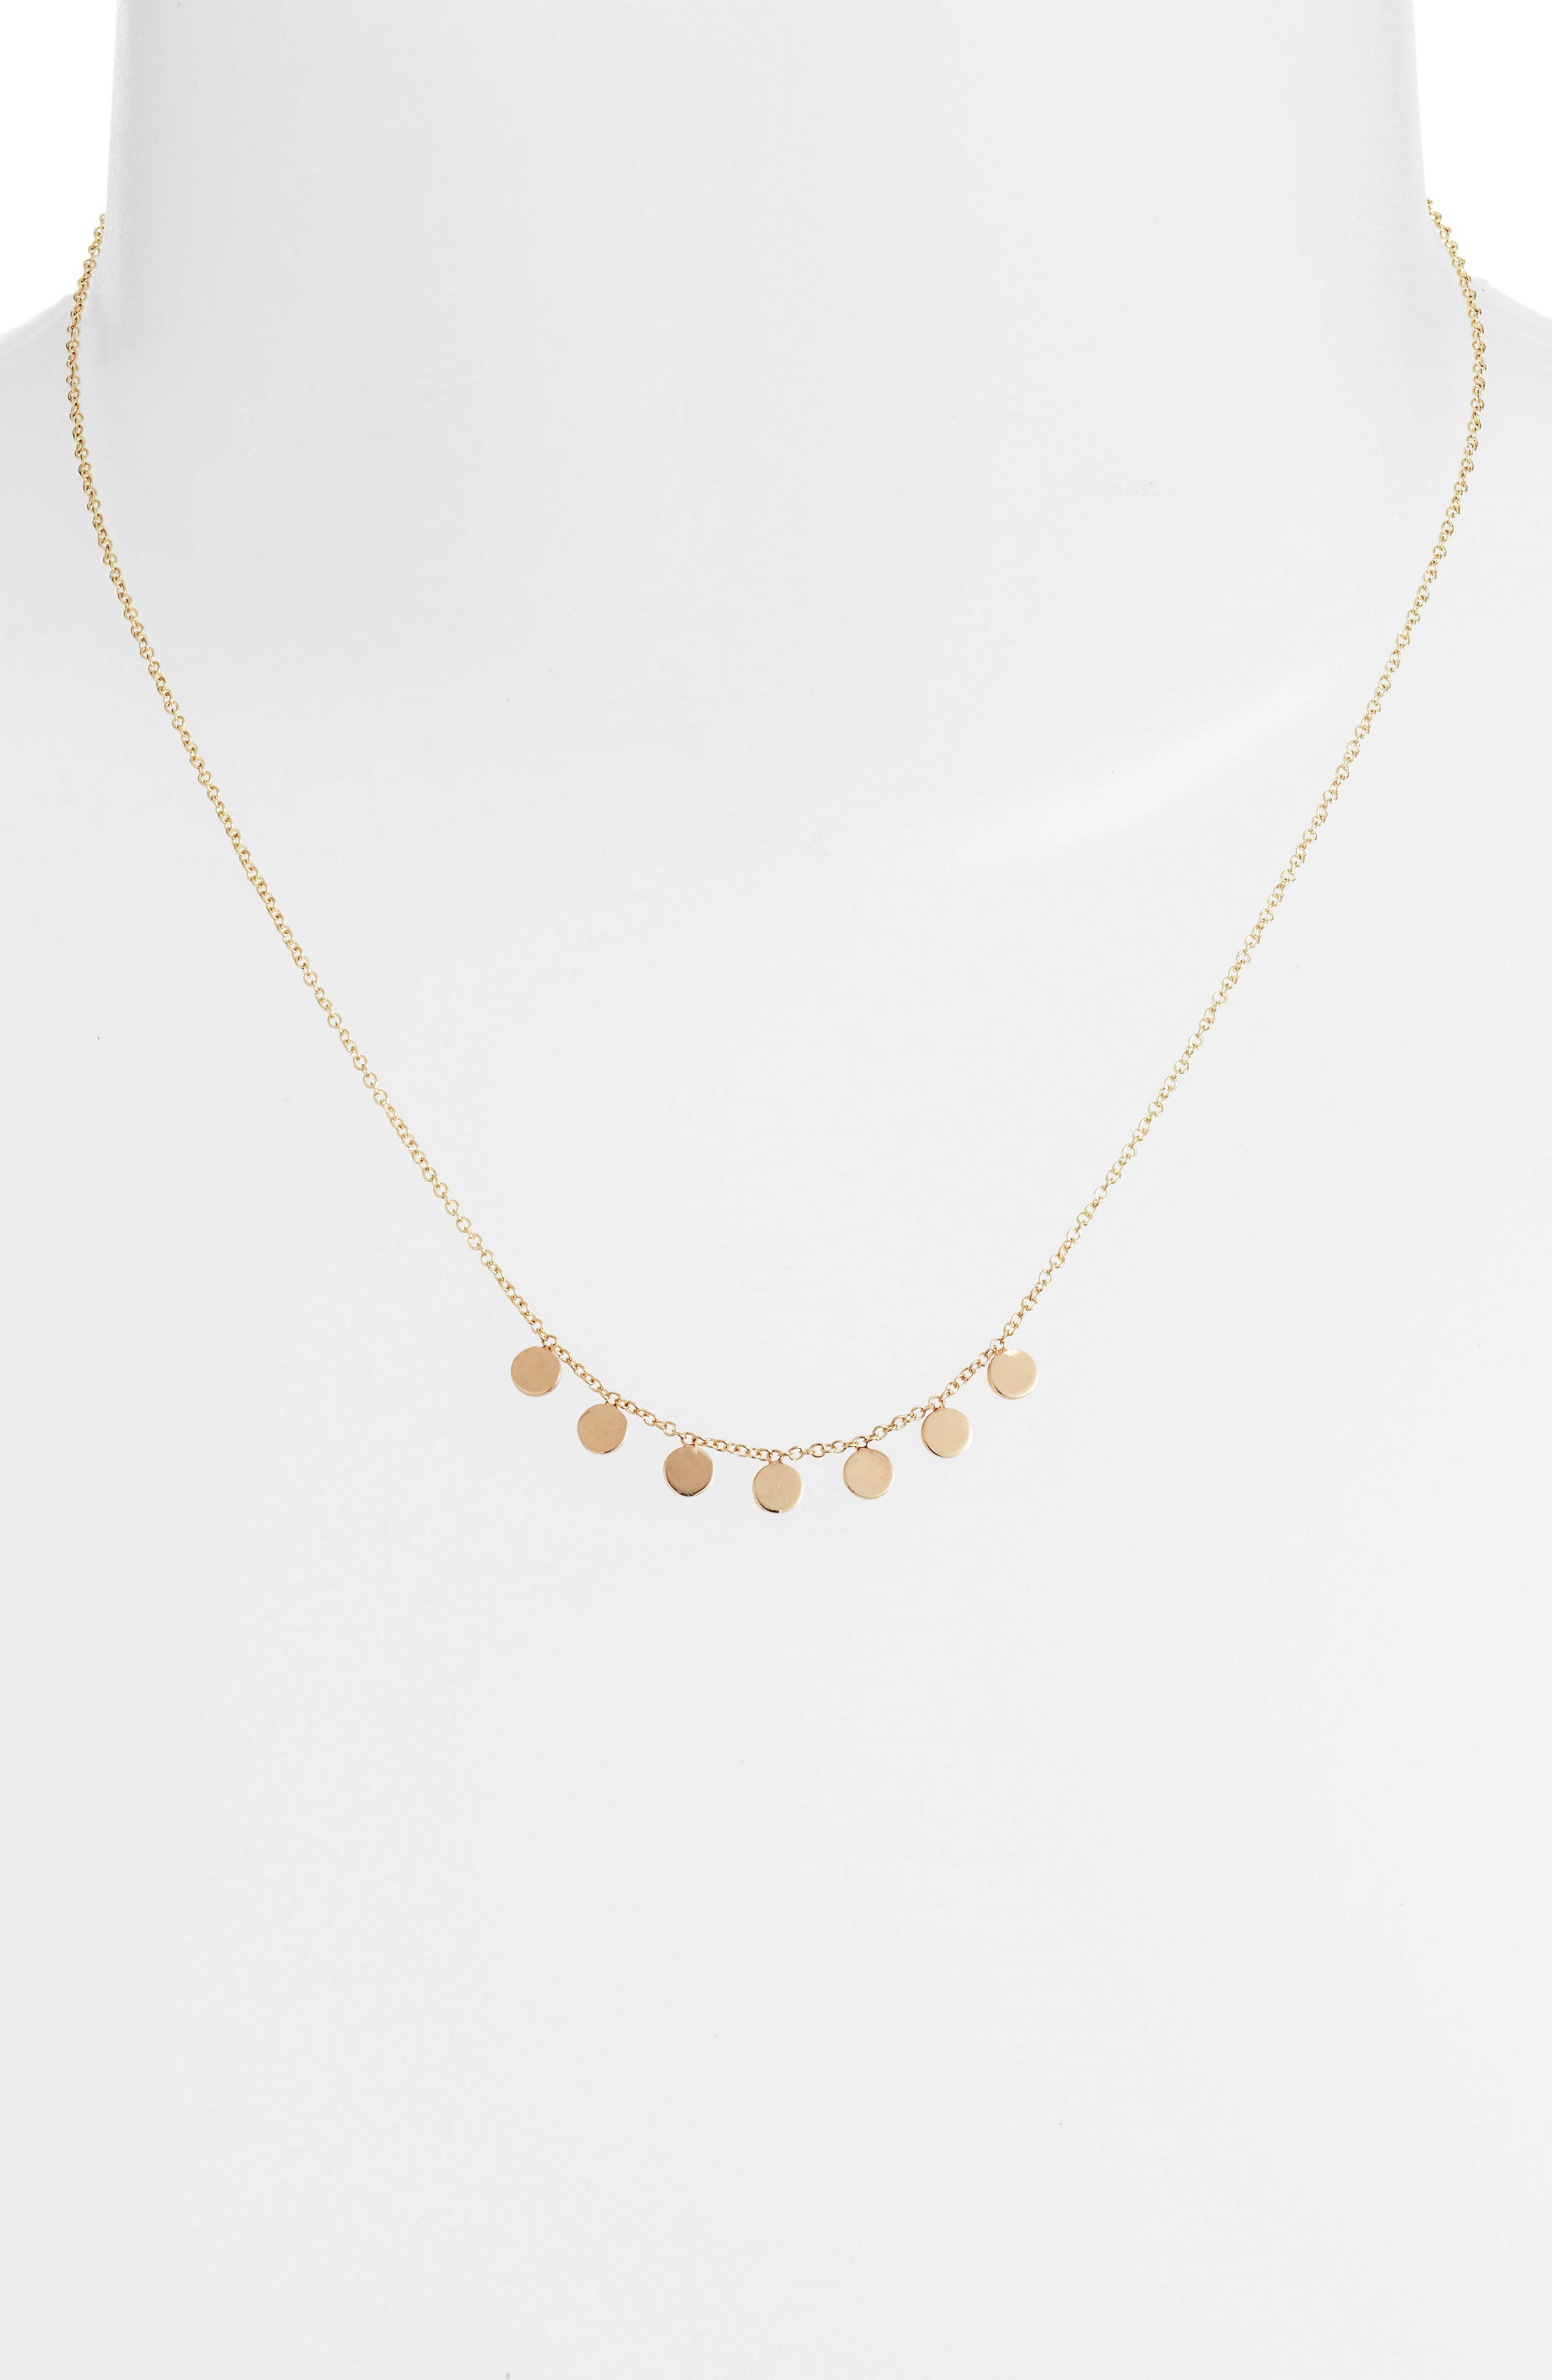 Itty Bitty Dangle Disc Necklace,                             Alternate thumbnail 2, color,                             Yellow Gold